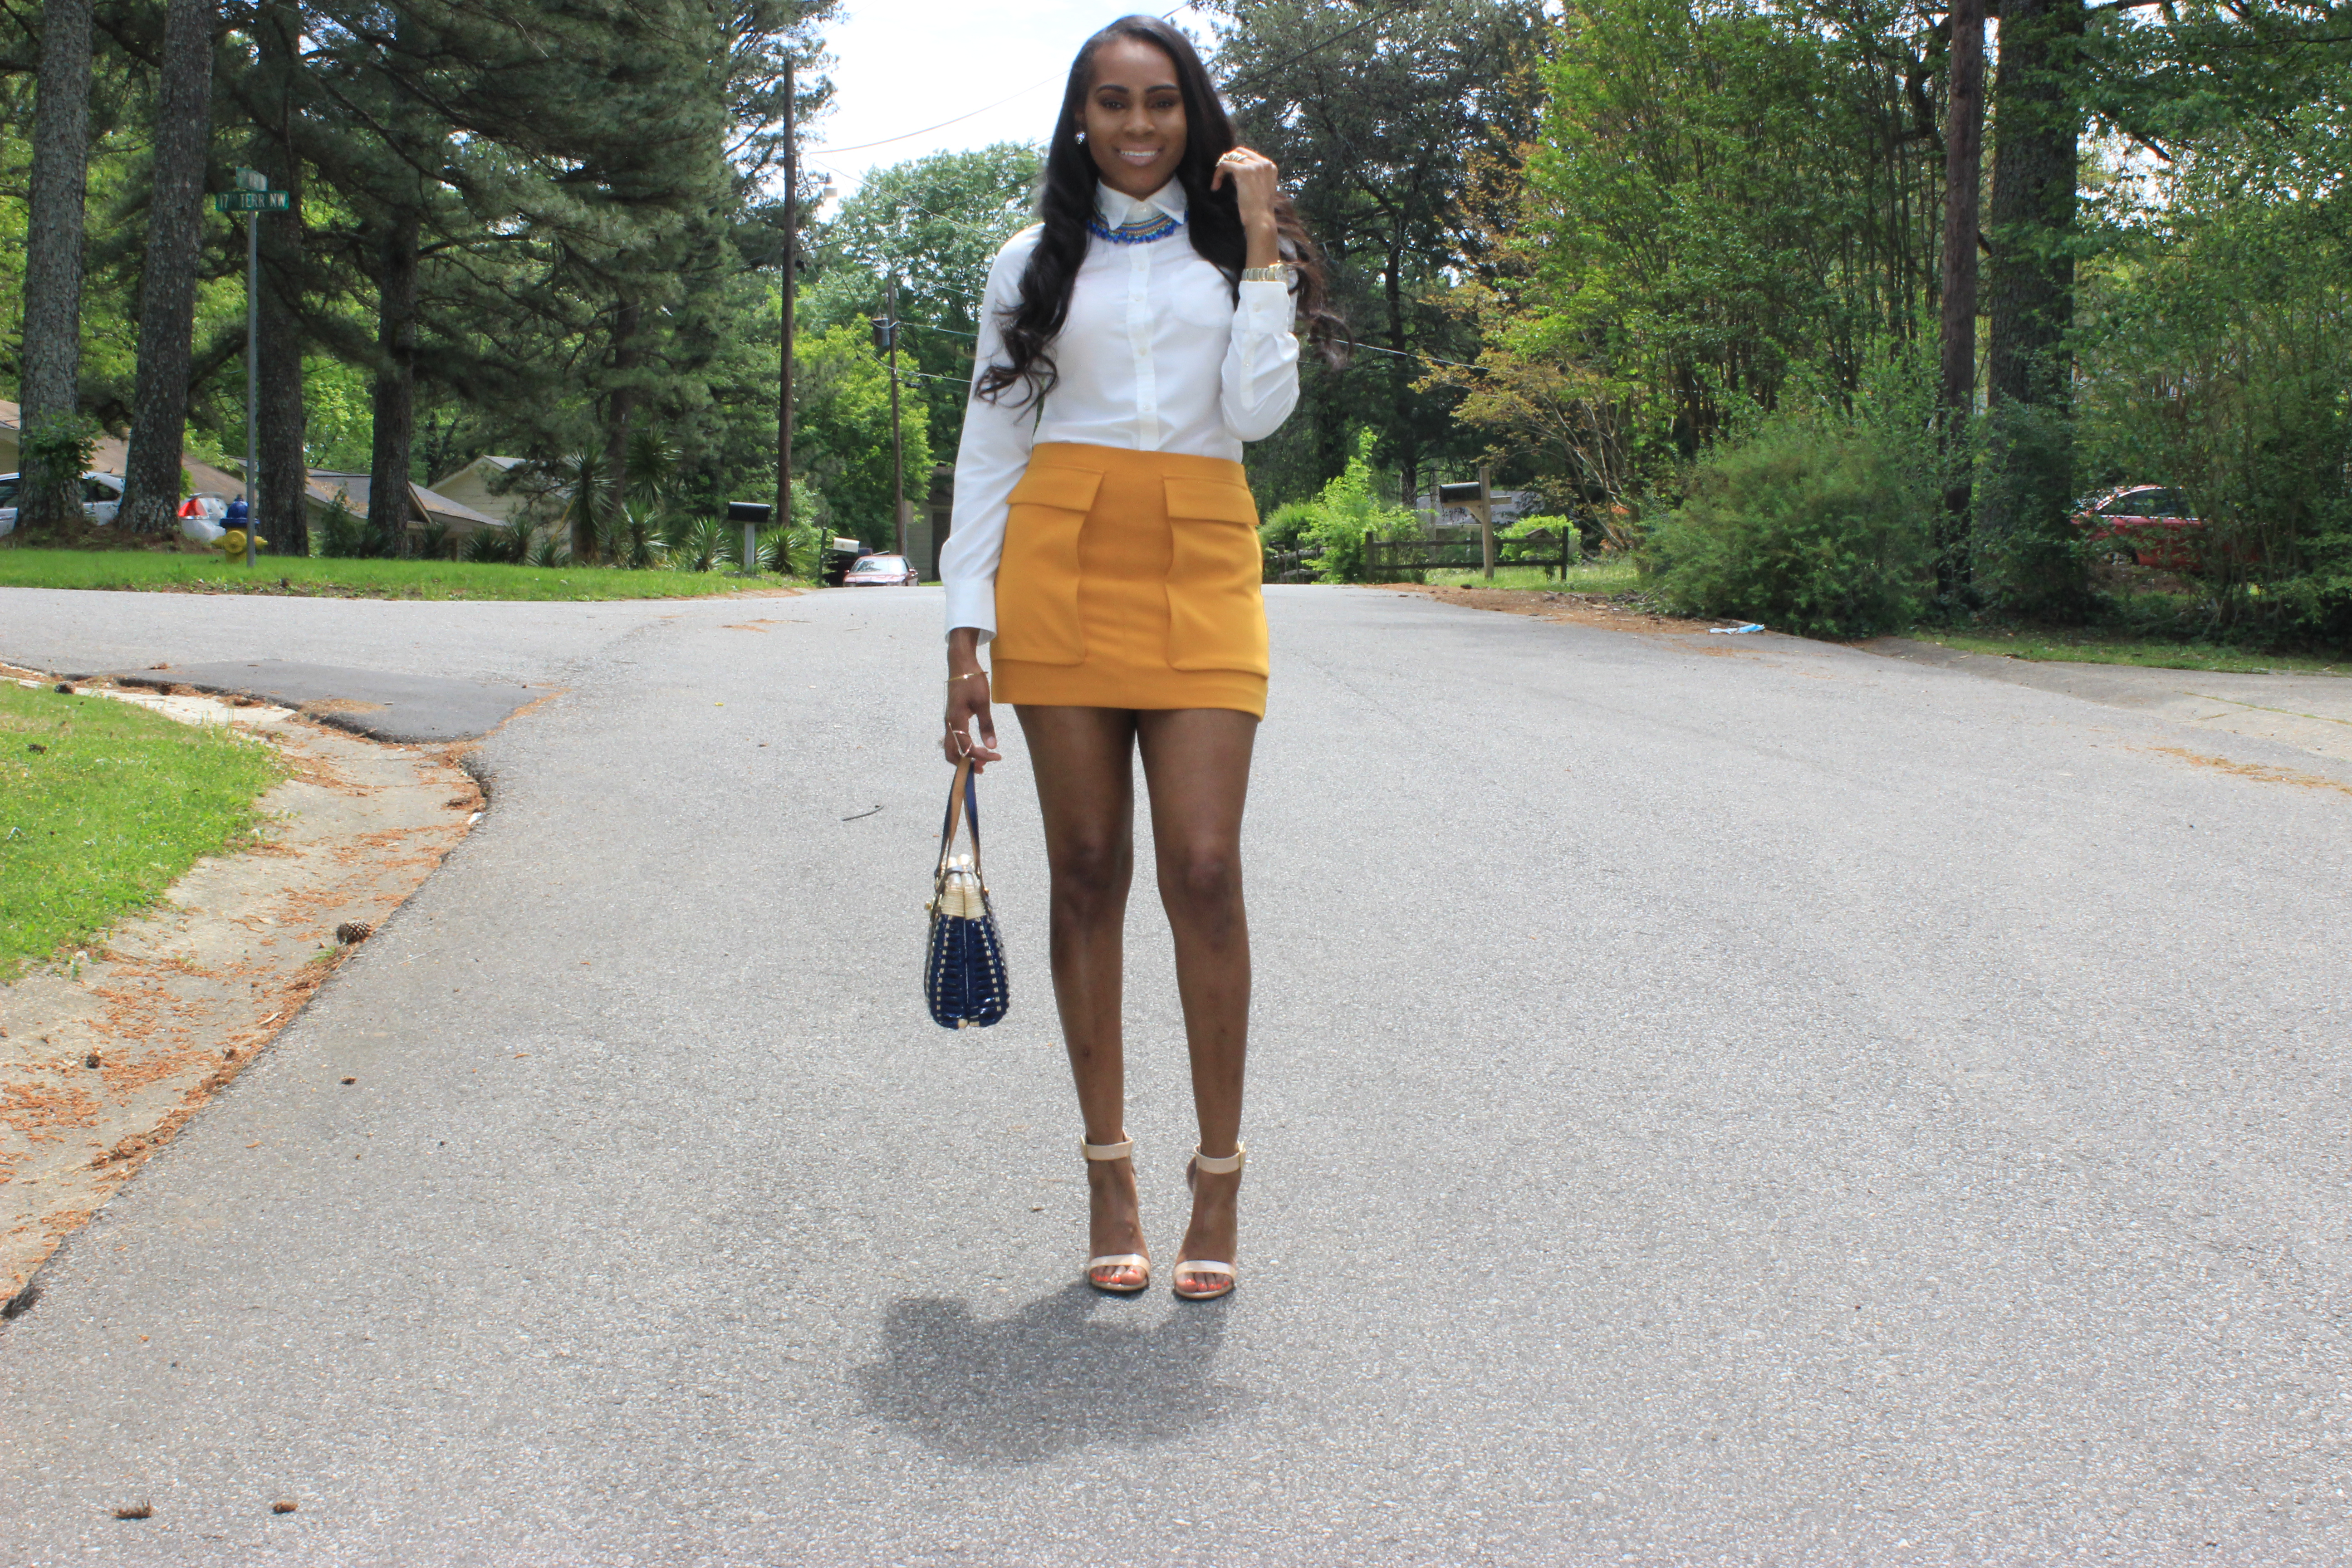 Style-Files-Forever21-Mustard-Yellow-Flap Pockets-Mini-Skirt-Yellow-Mini-Skirt-Target-Merona-White-Blouse-Mossimo-Ankle-Strap-Tan-Nude-Patent-Leather-sandals-oohlalablog-8